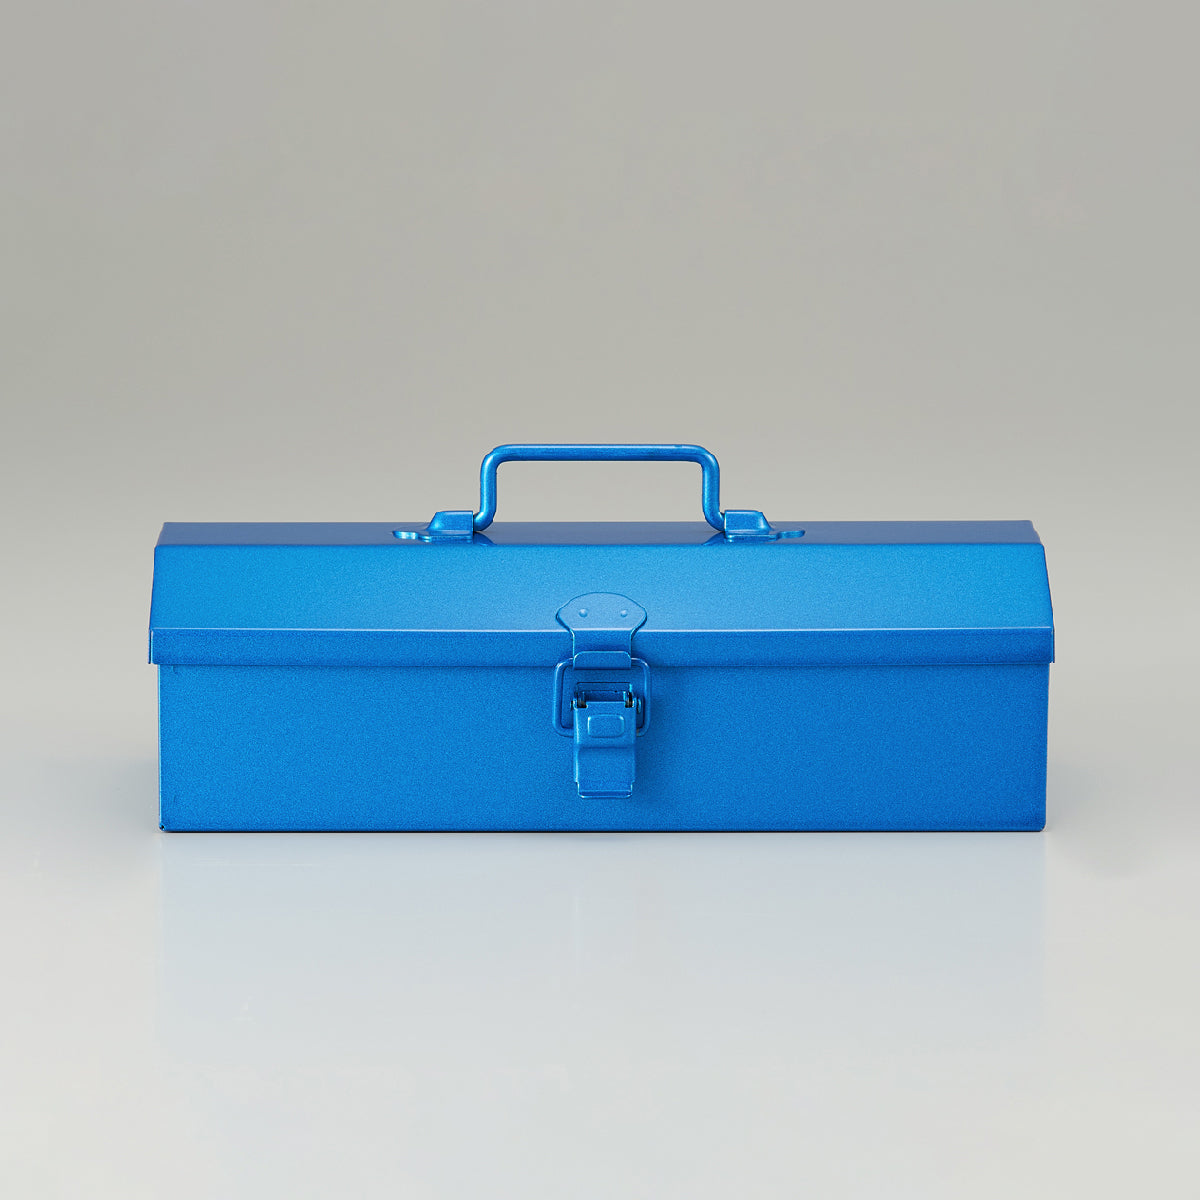 Cobako Mini Box BLUE  / Y-17 - The Outsiders